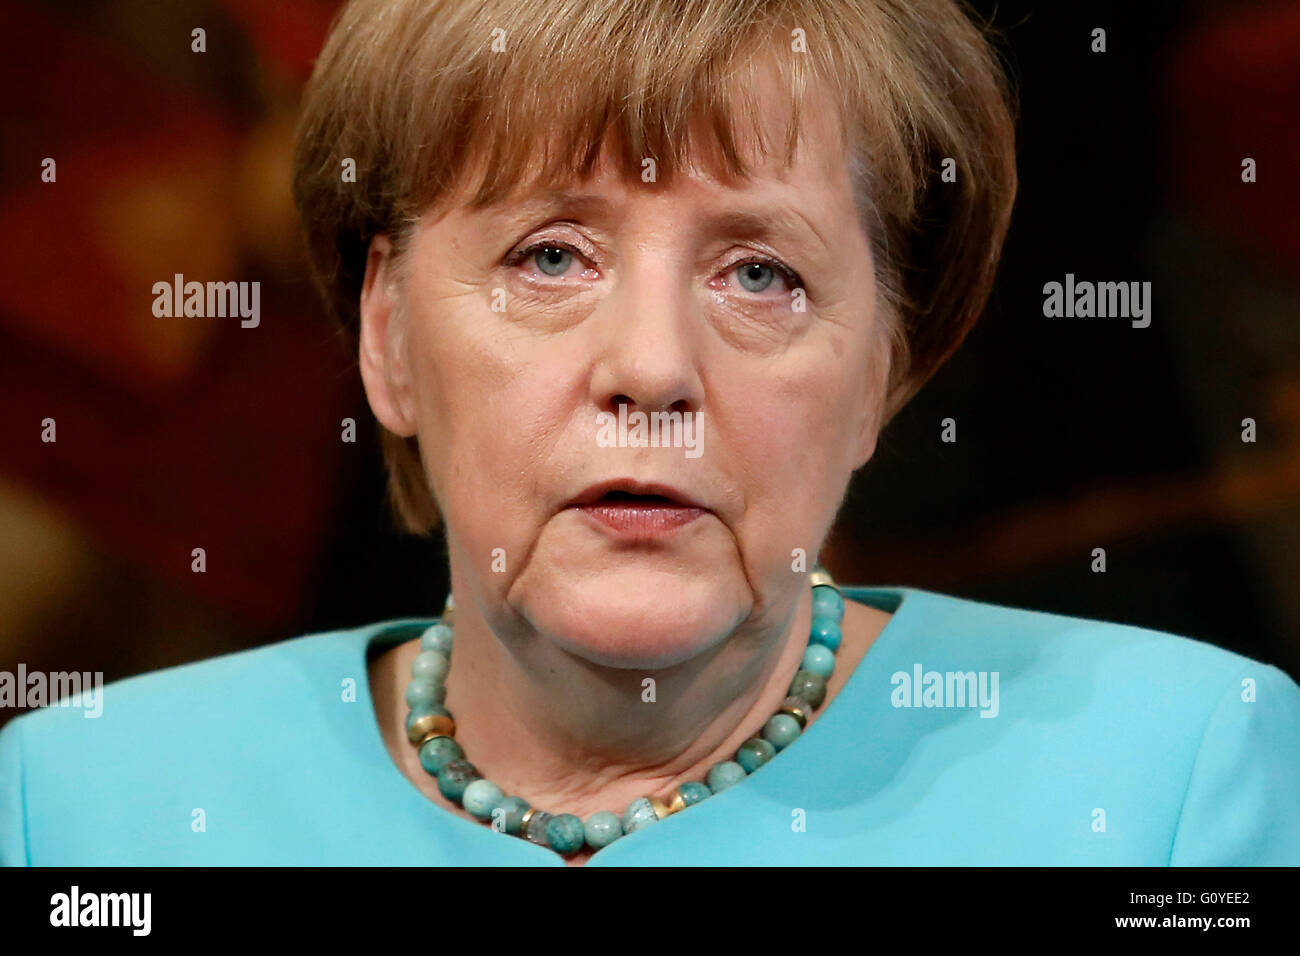 Rome, Italy. 5th May, 2016. Angela Merkel Rome 5th May 2016. Italian premier meets the German Chancellor. Photo - Stock Image